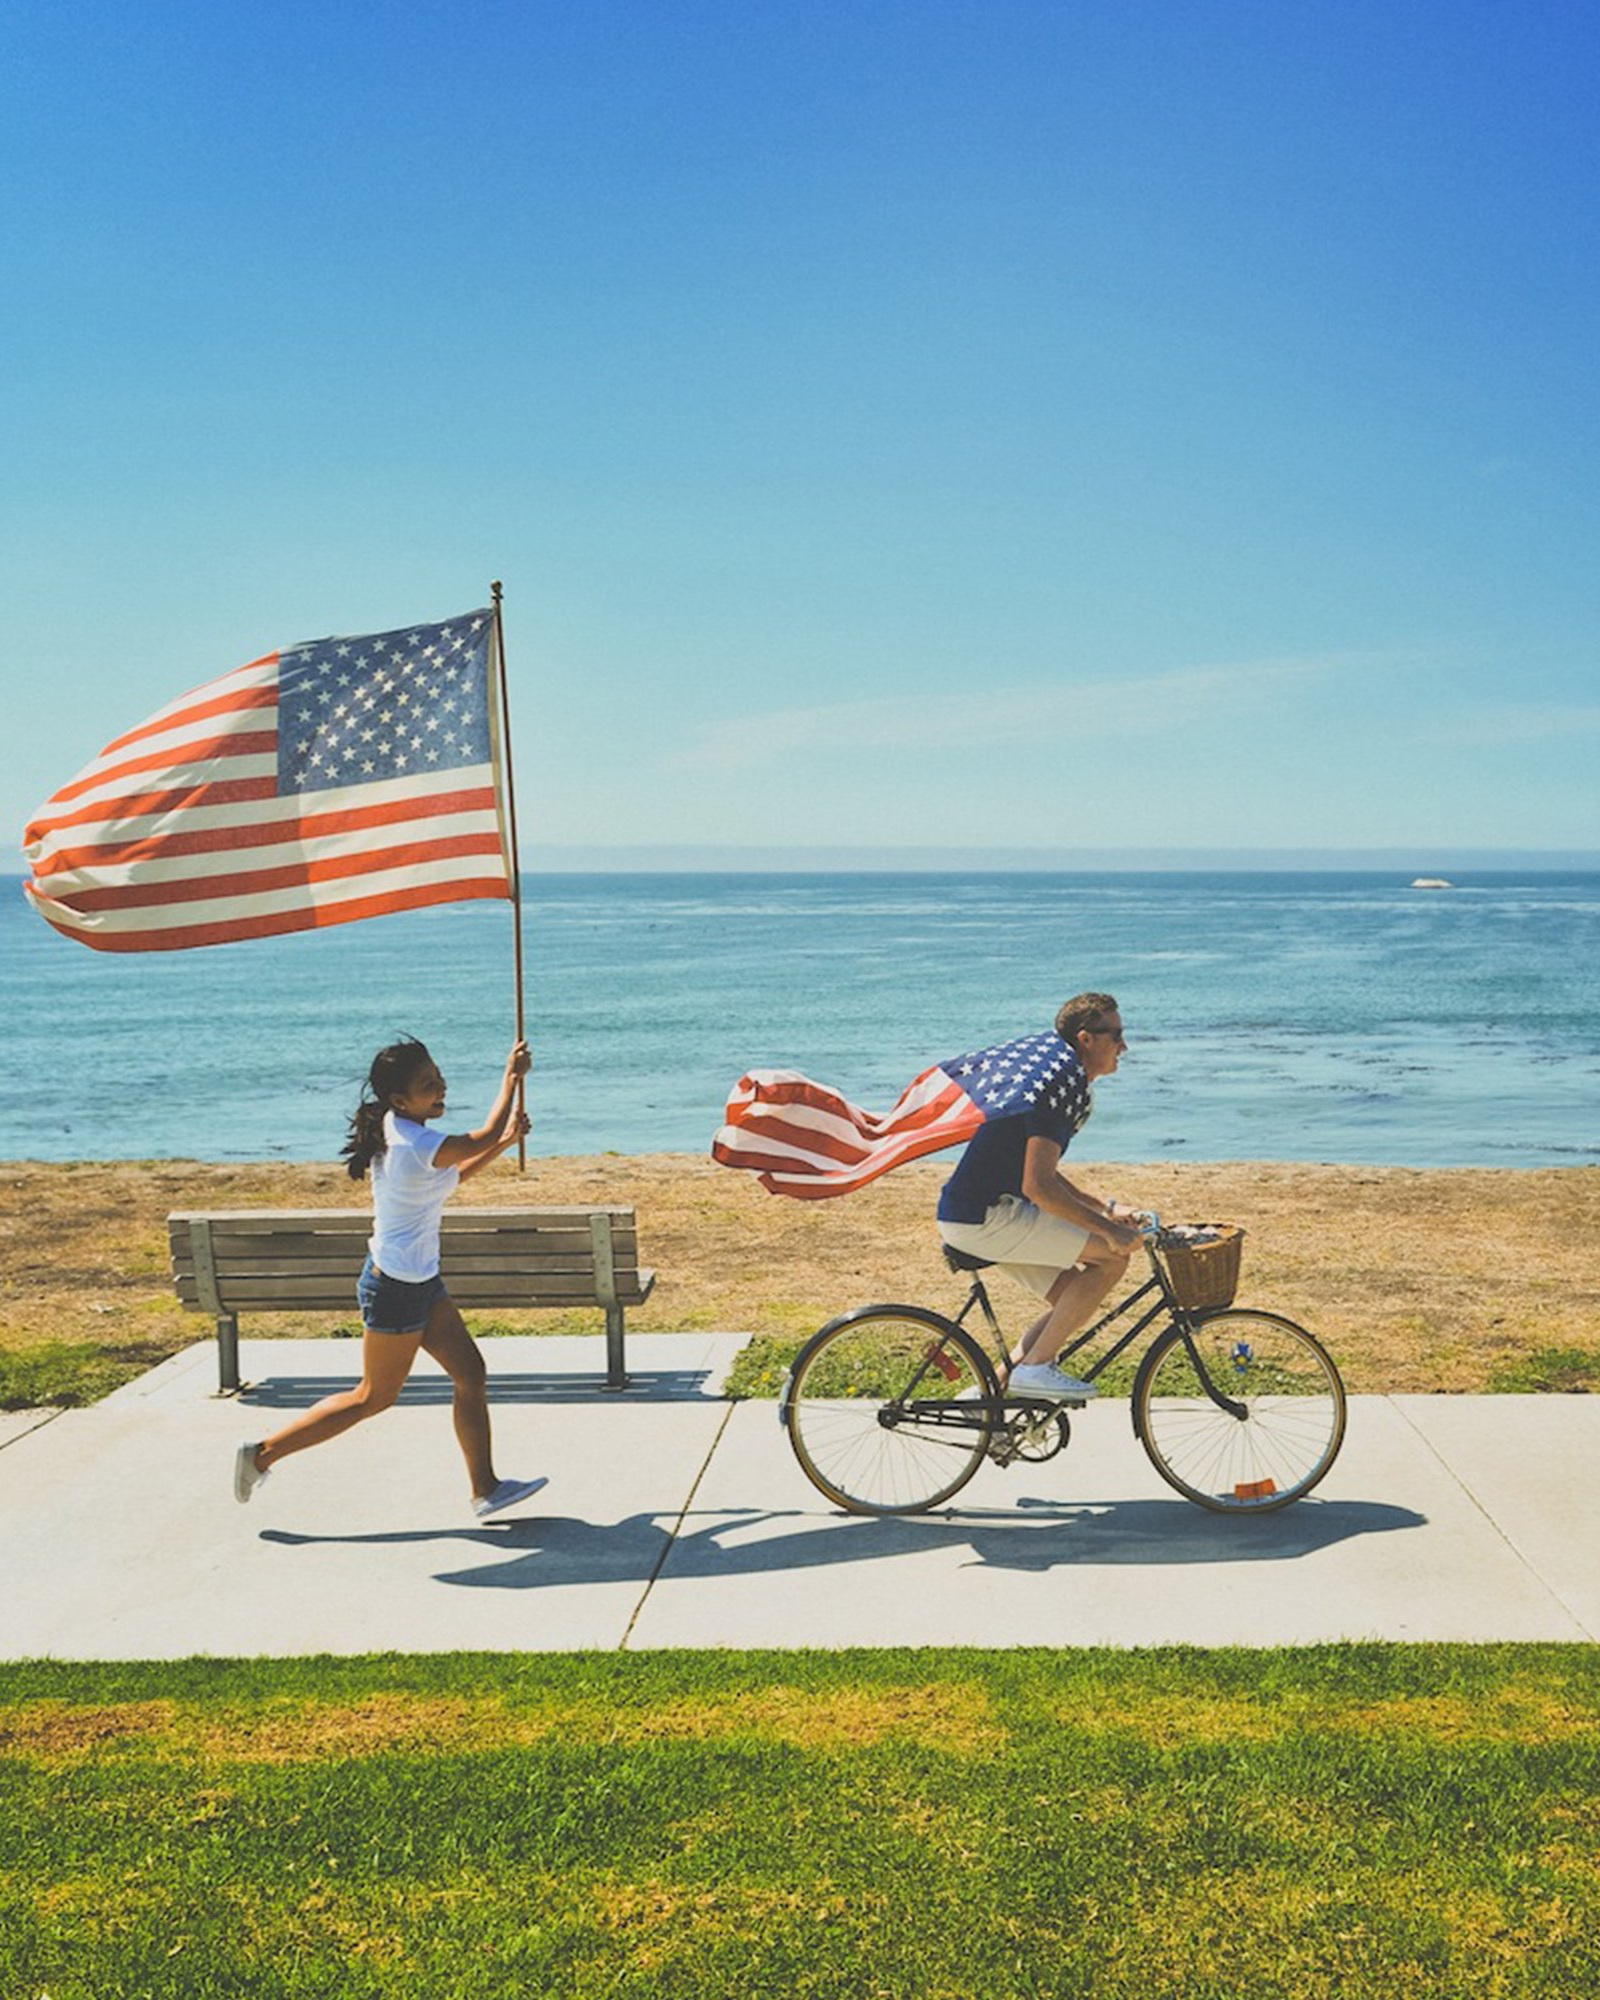 How much do you think Americans spend on Fourth of July activities? - Road trips, barbeques, and firework shows – they all come with a price.